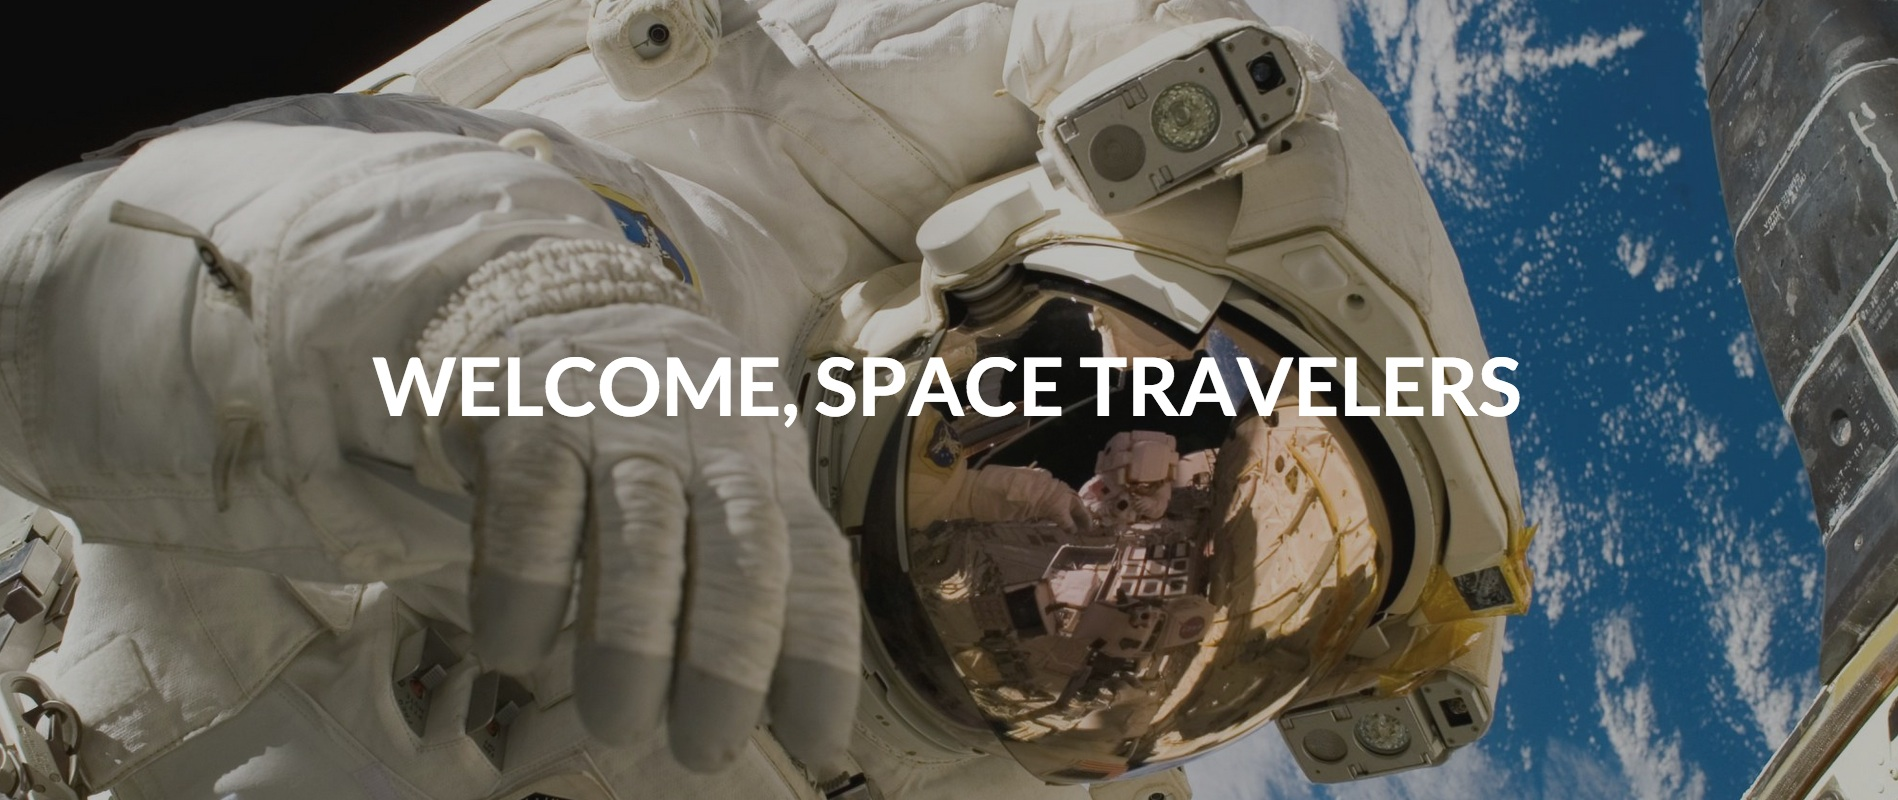 welcome-space-travler